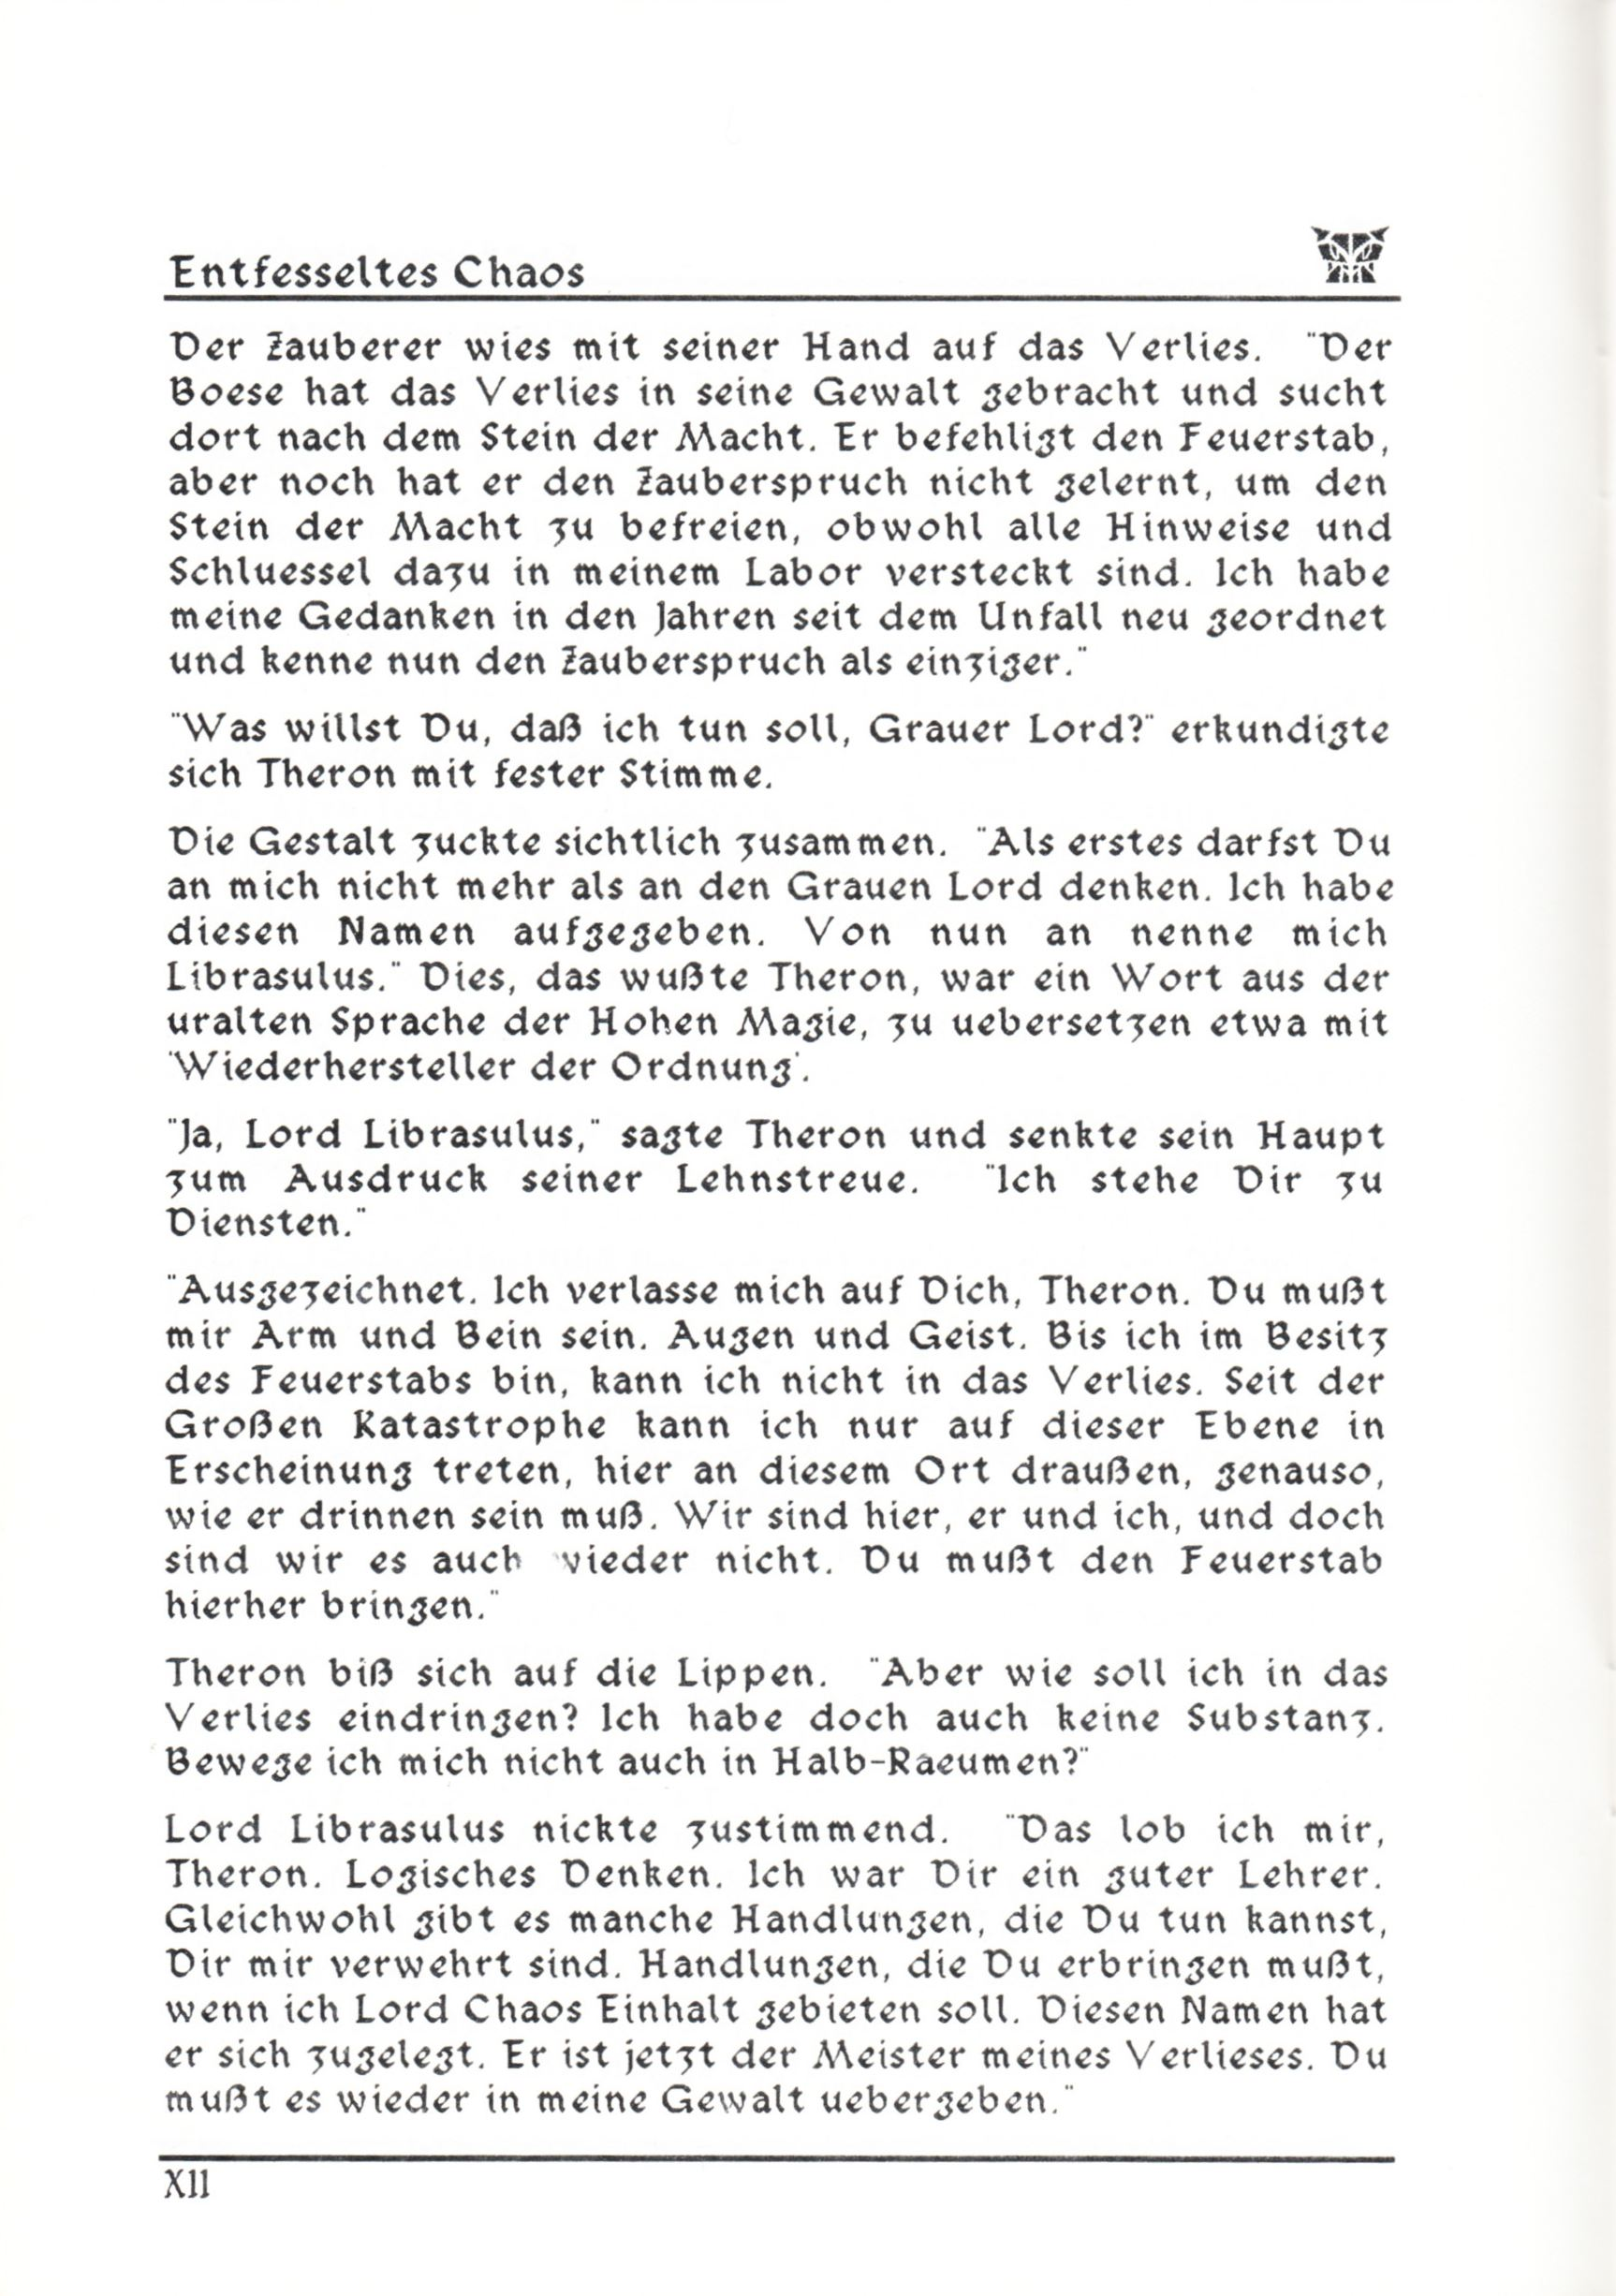 Game - Dungeon Master - DE - PC - Psygnosis - Manual - Page 016 - Scan